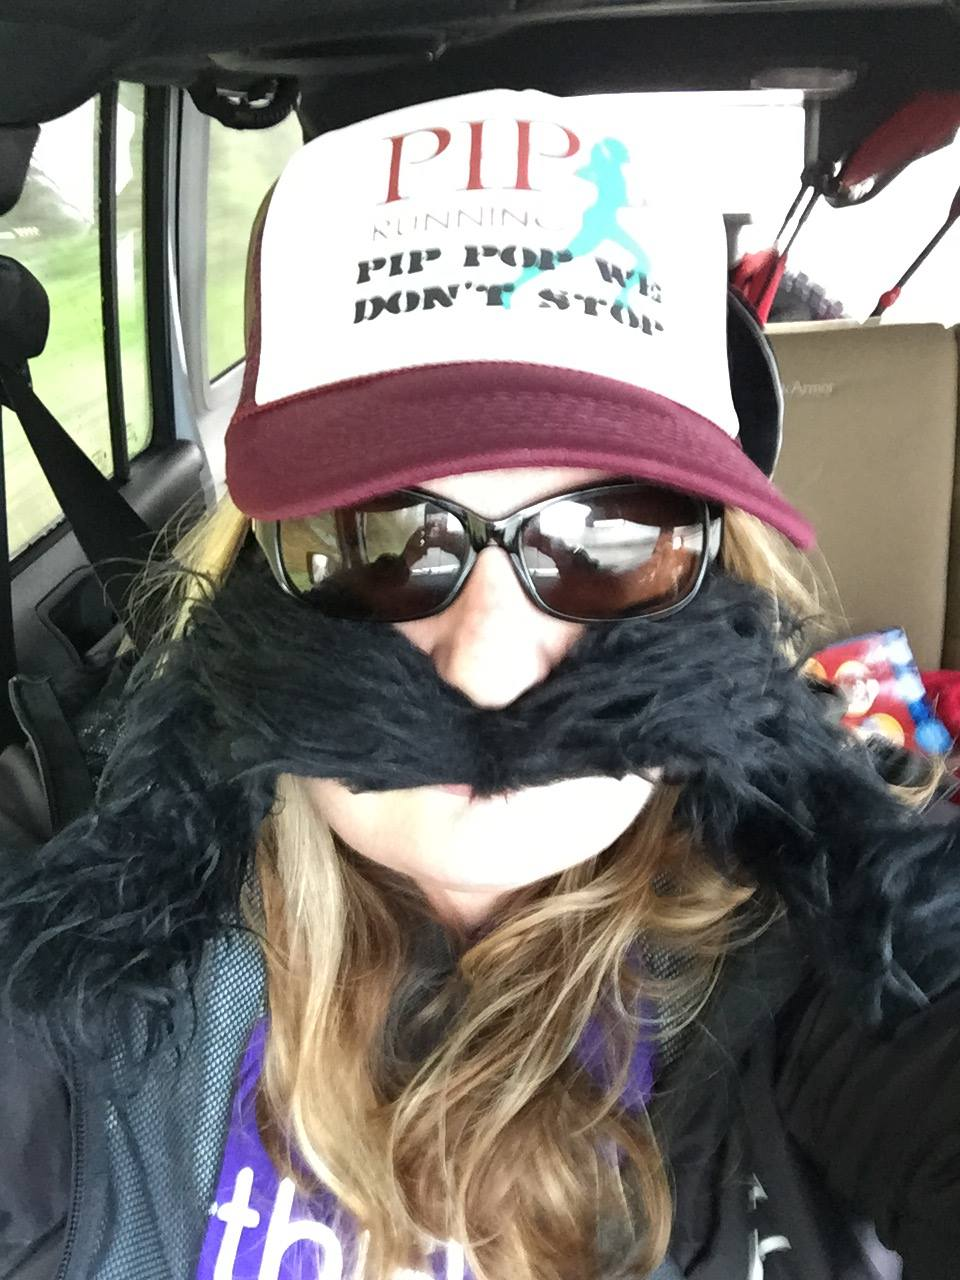 Diane sporting her 'stache for The Mustache Dash!